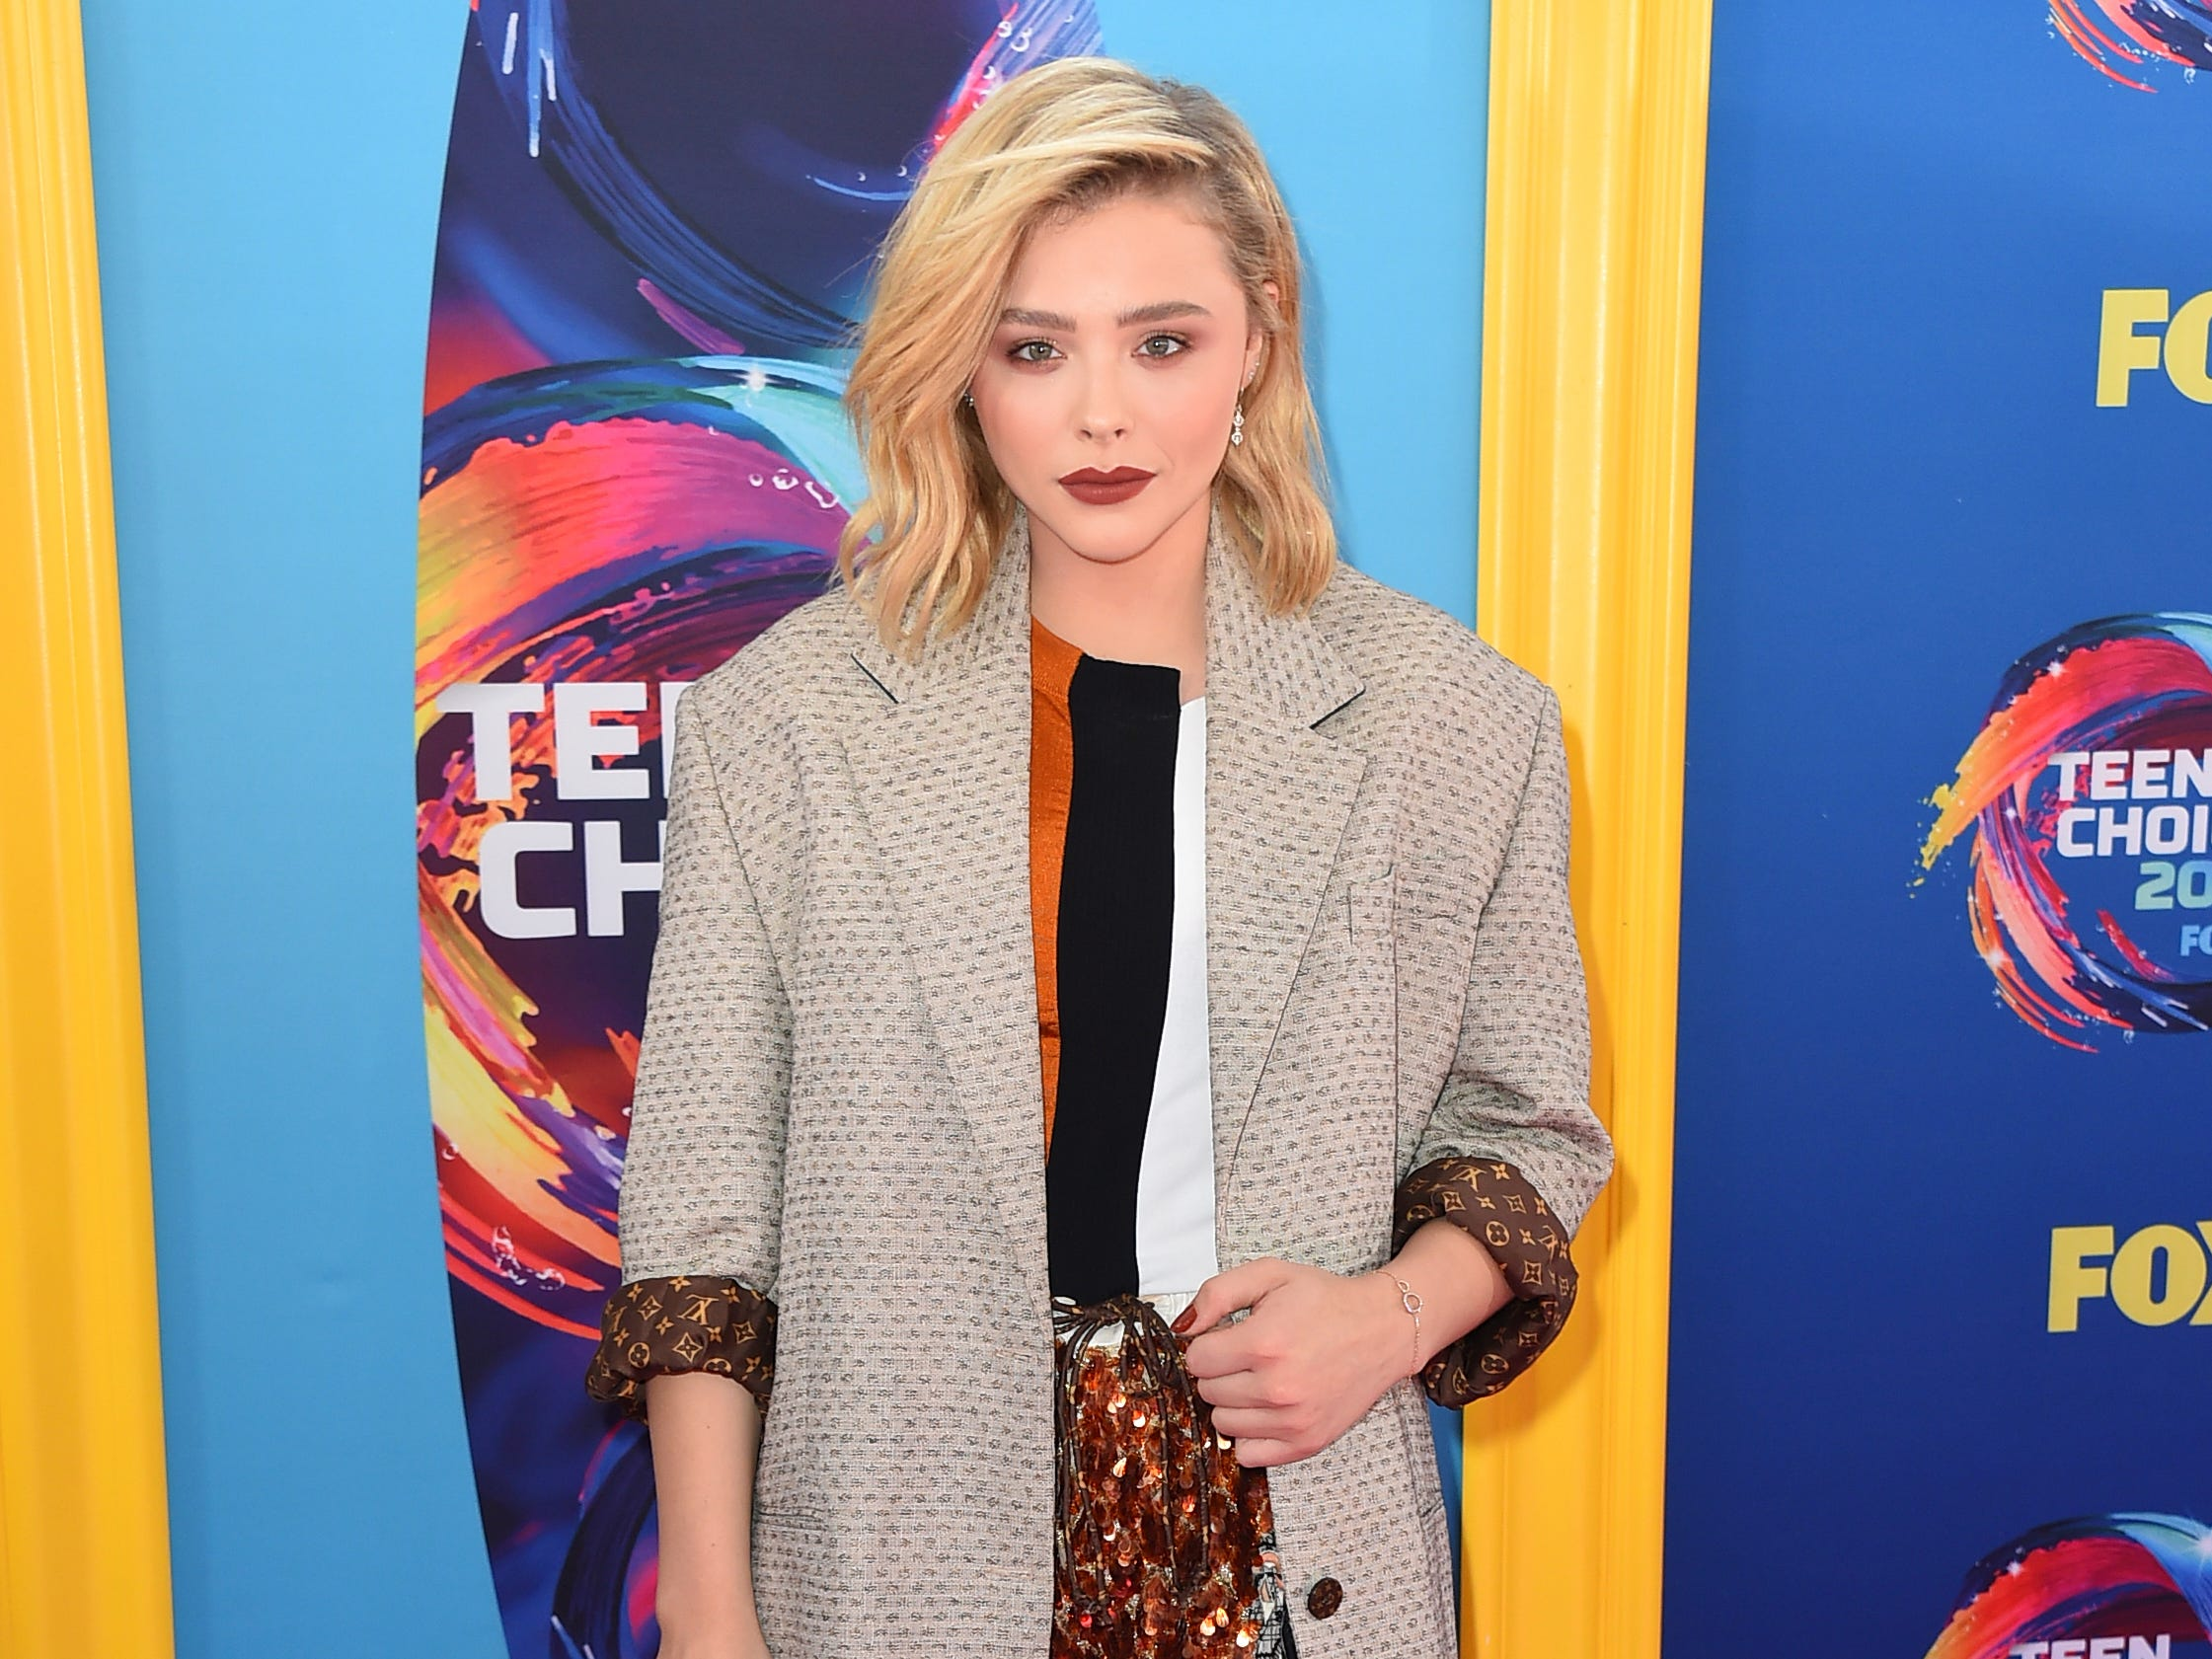 Chloe Grace Moretz arrives at the Teen Choice Awards at The Forum on Sunday, Aug. 12, 2018, in Inglewood, Calif. (Photo by Jordan Strauss/Invision/AP) ORG XMIT: CAPM142